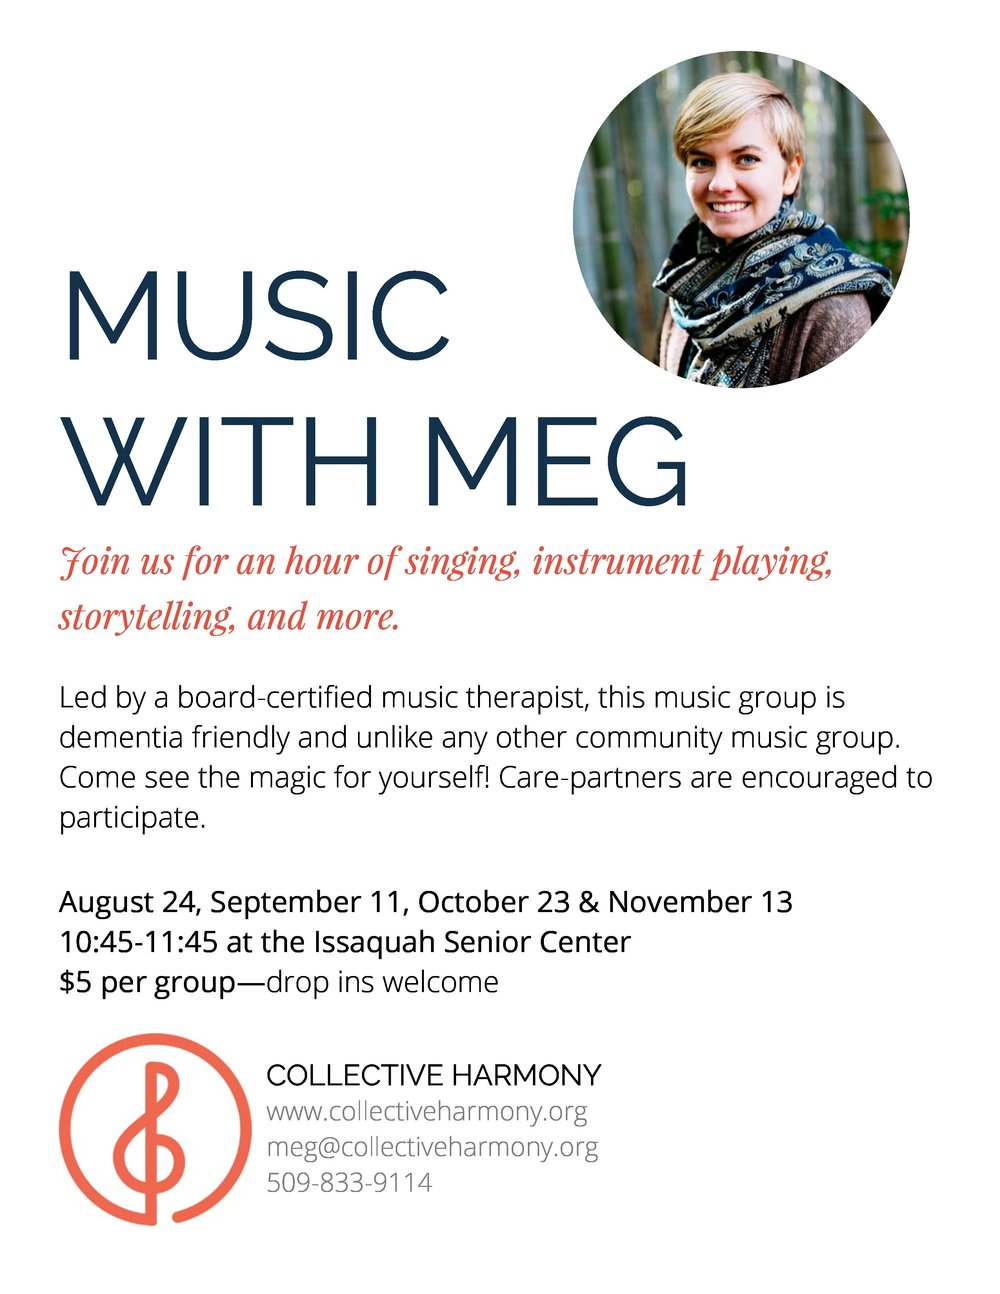 MUSIC_WITH_MEG FLYER-page-0.jpg